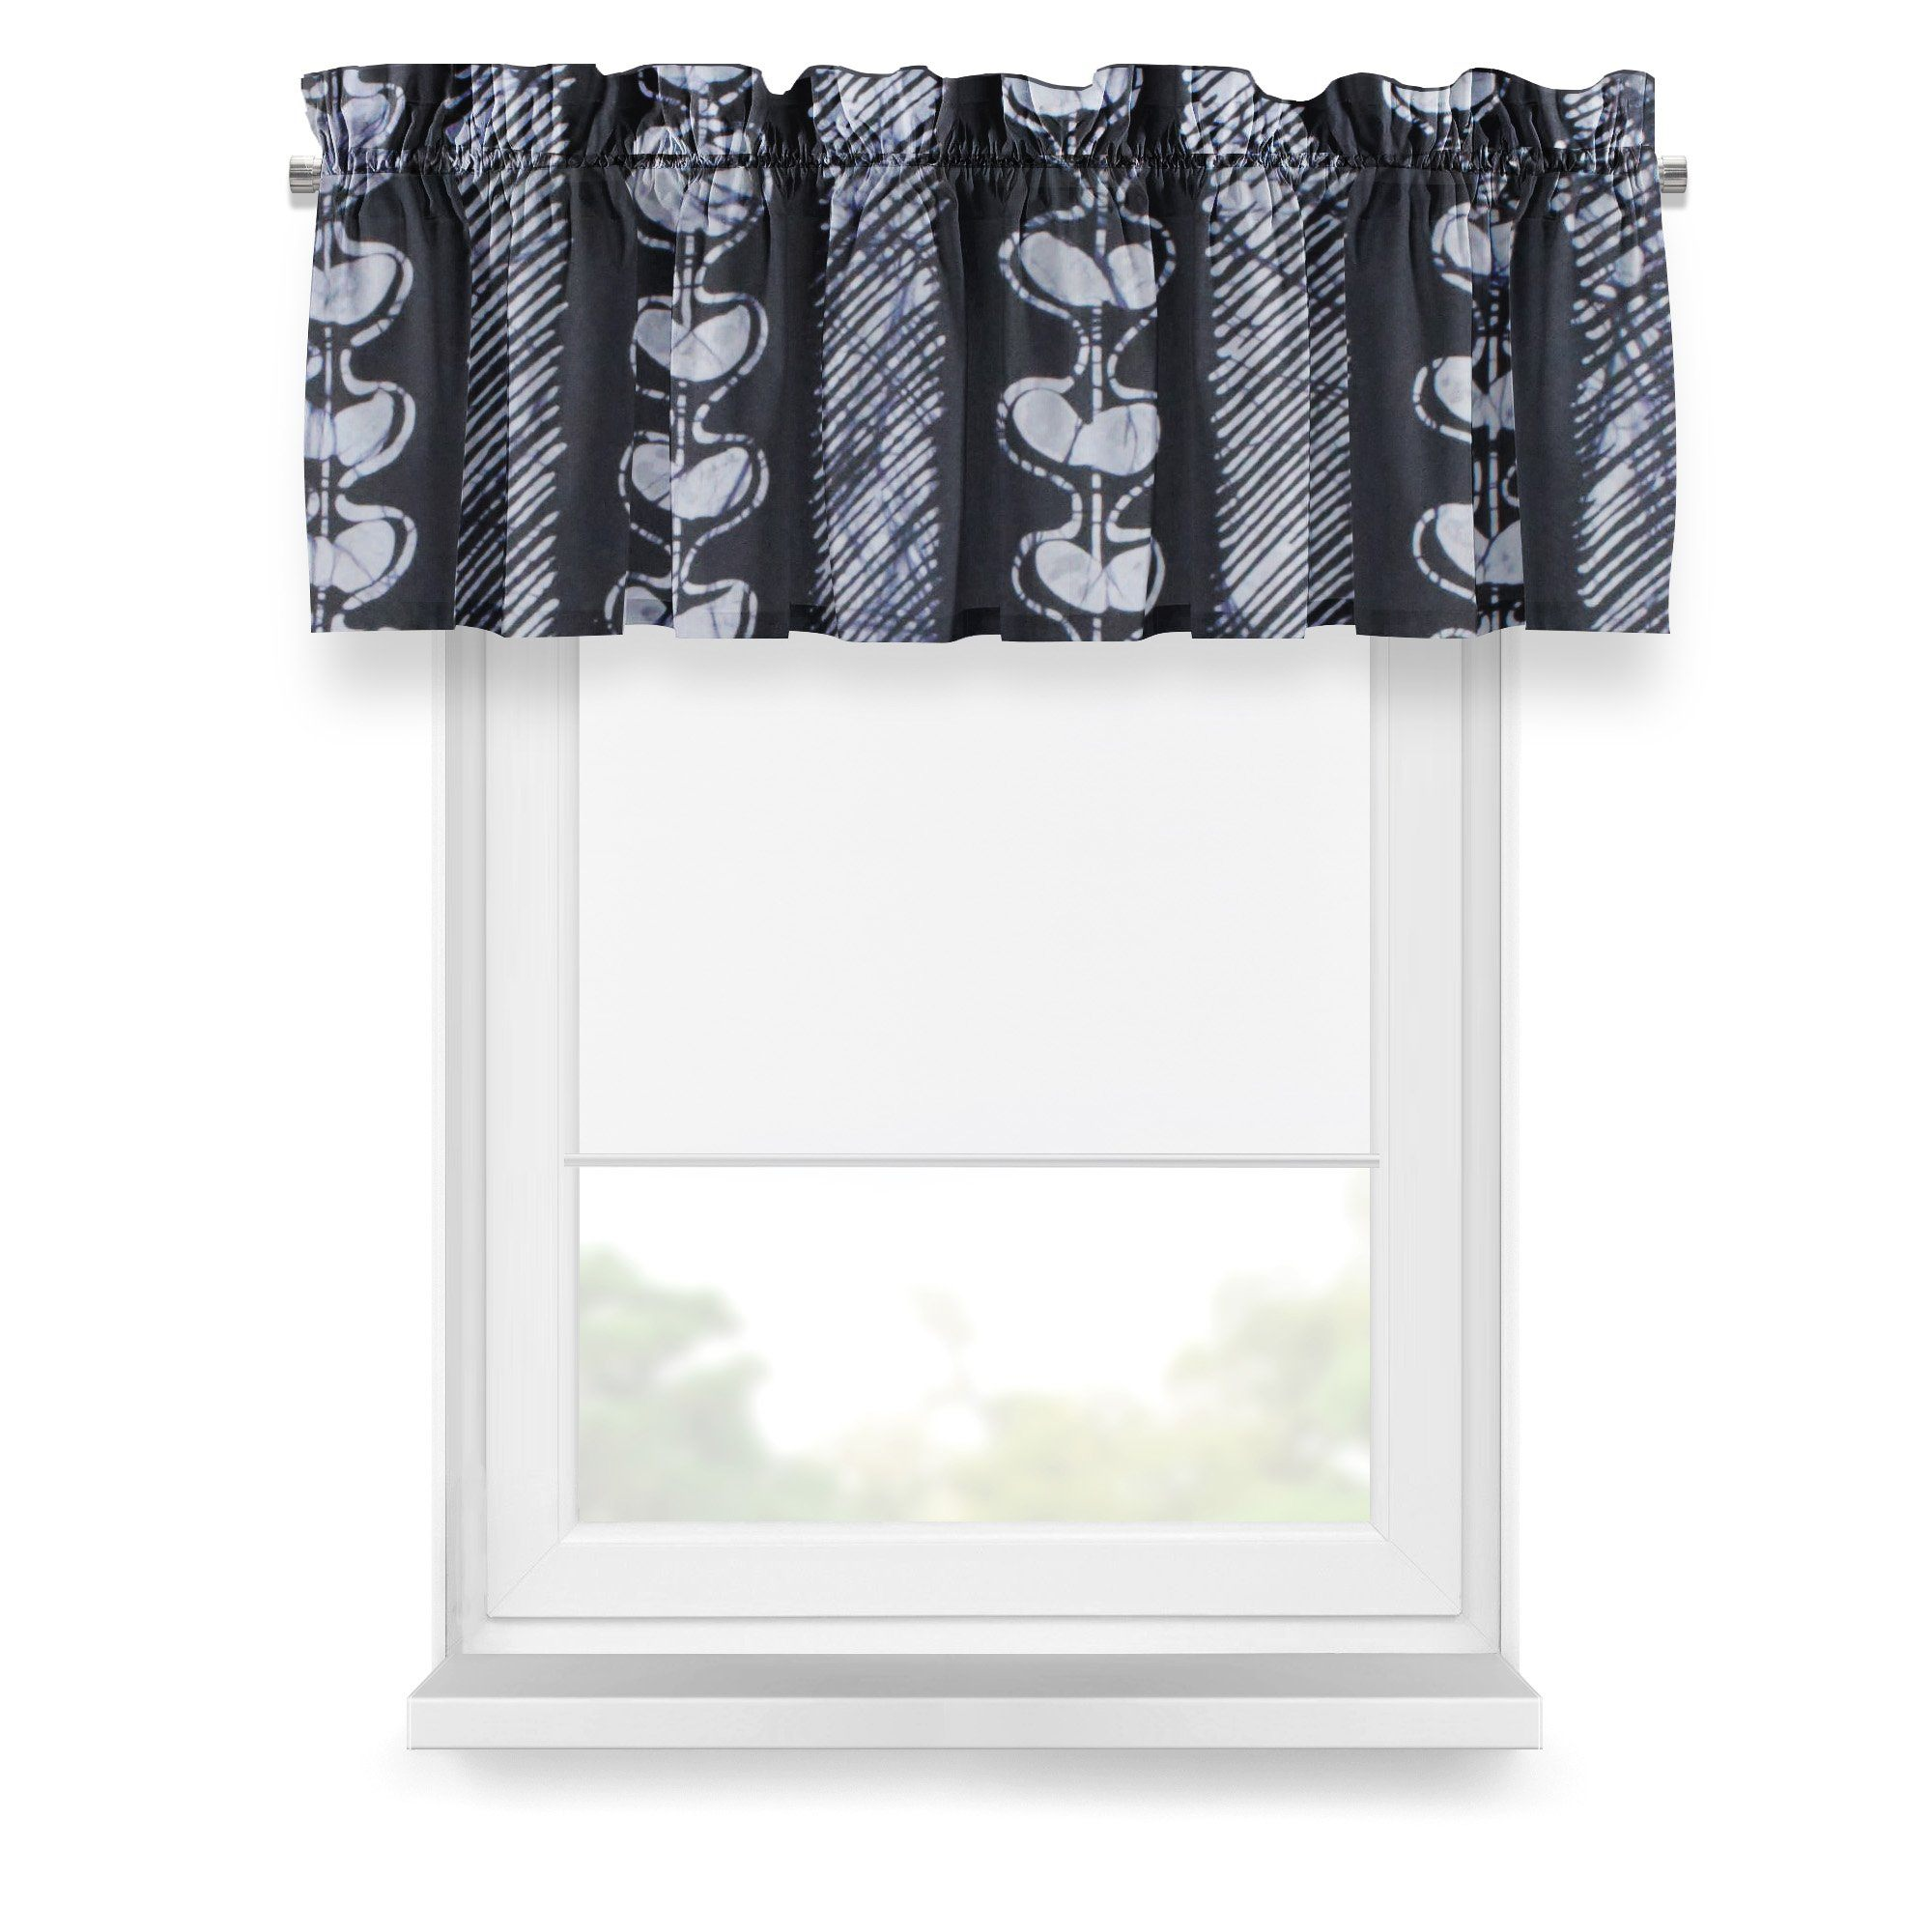 ME™ Batik Valance - Egba Stripes Window Treatment Show Your Africa Egba Batik Stripes